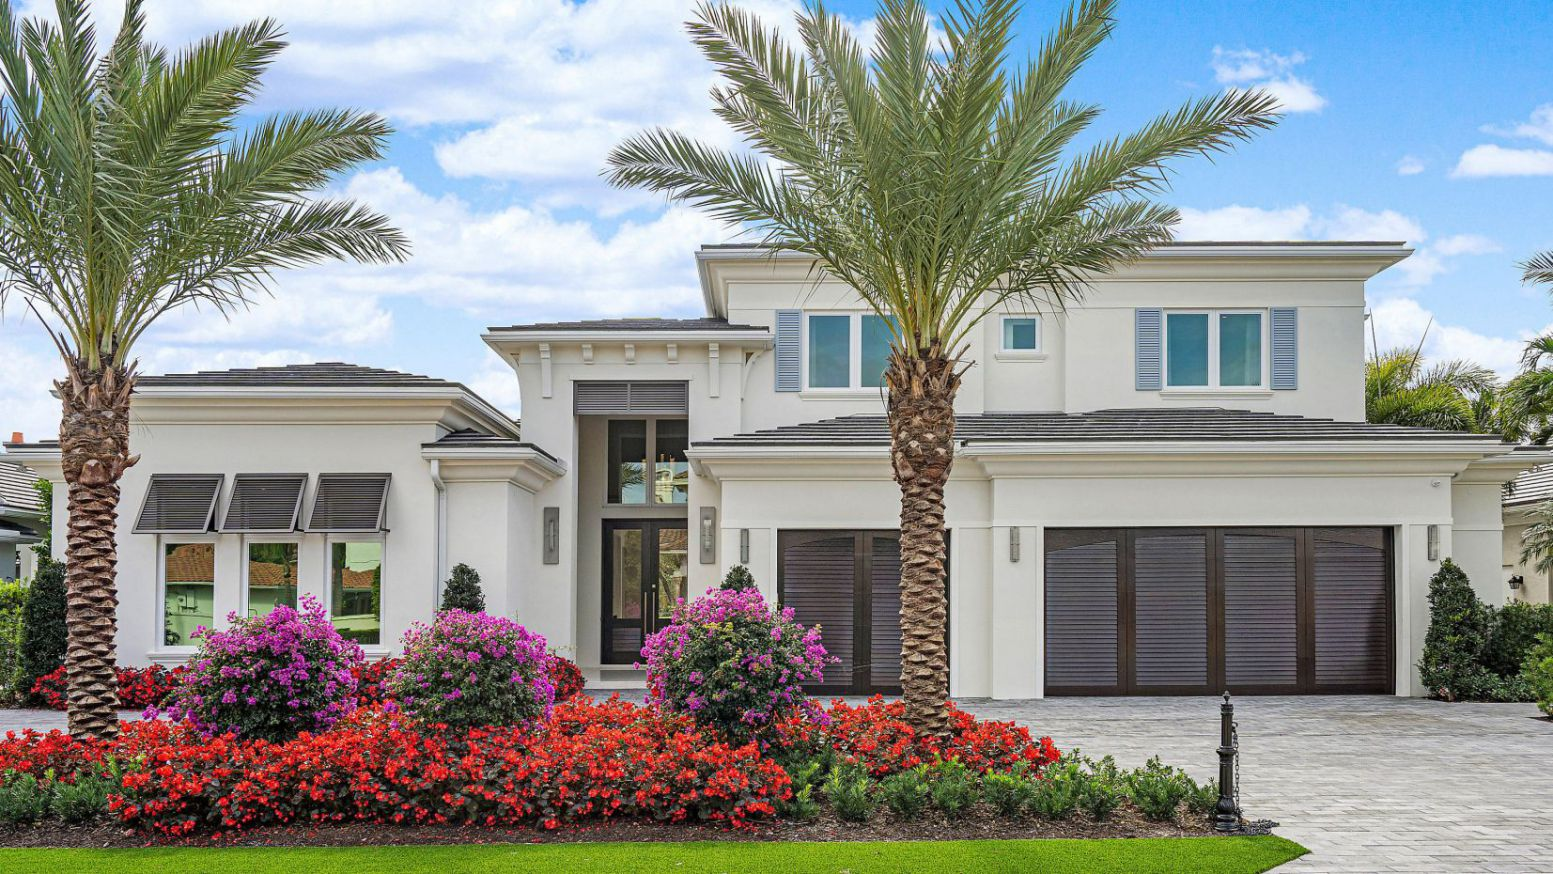 Florida Waterfront Home in Boca Raton for Sale $6.79 Million